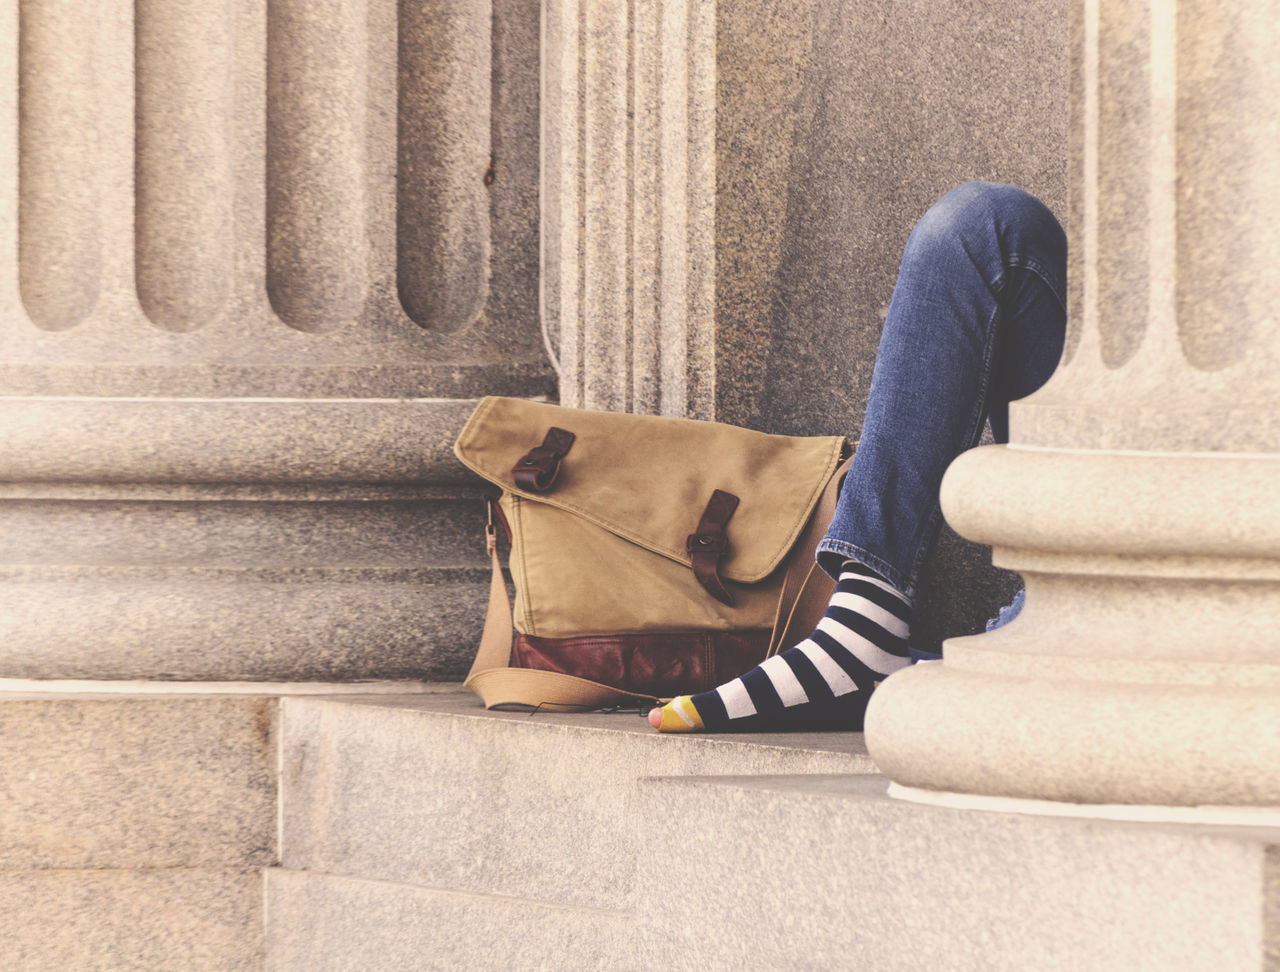 Alone Bag Beggar City City Life Concrete Day Foot Homeless Homelessman Homelessness  Hungry Man Outdoor Person Sad Socks Street Streetphotography Striped Stripes Pattern Unlucky Urban